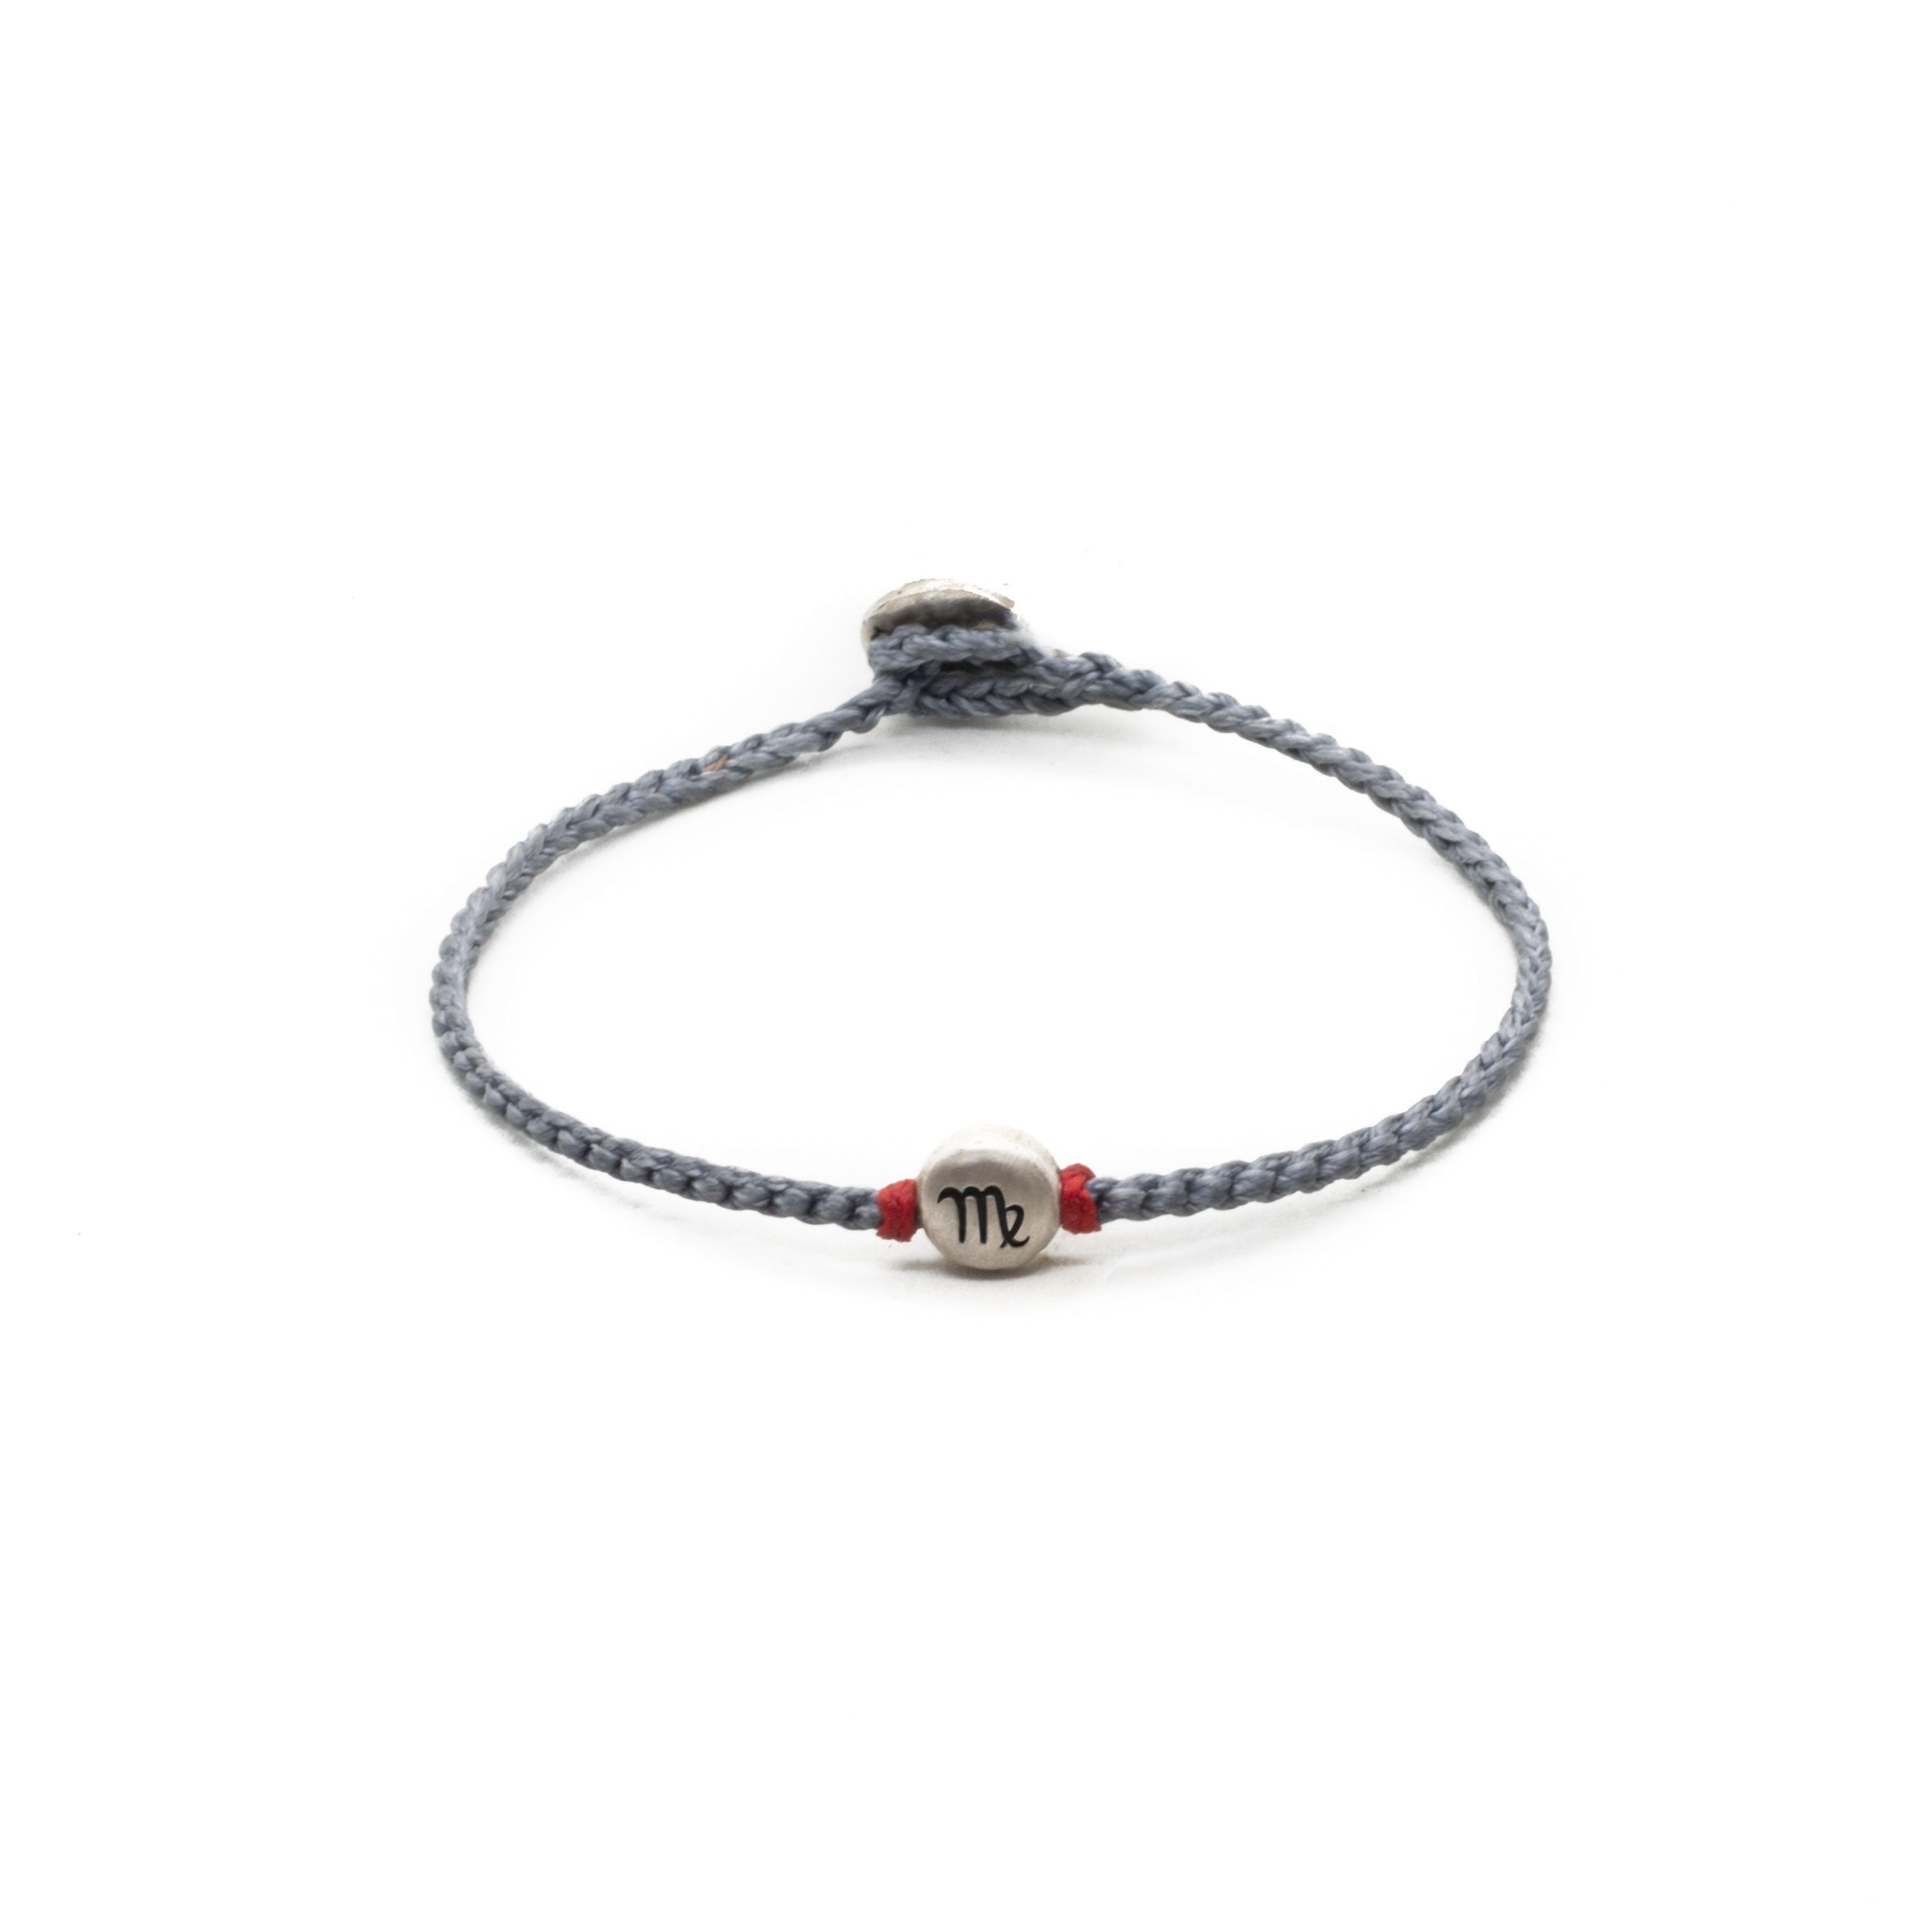 Silver Virgo zodiac sign bracelet with grey hand braided chain.